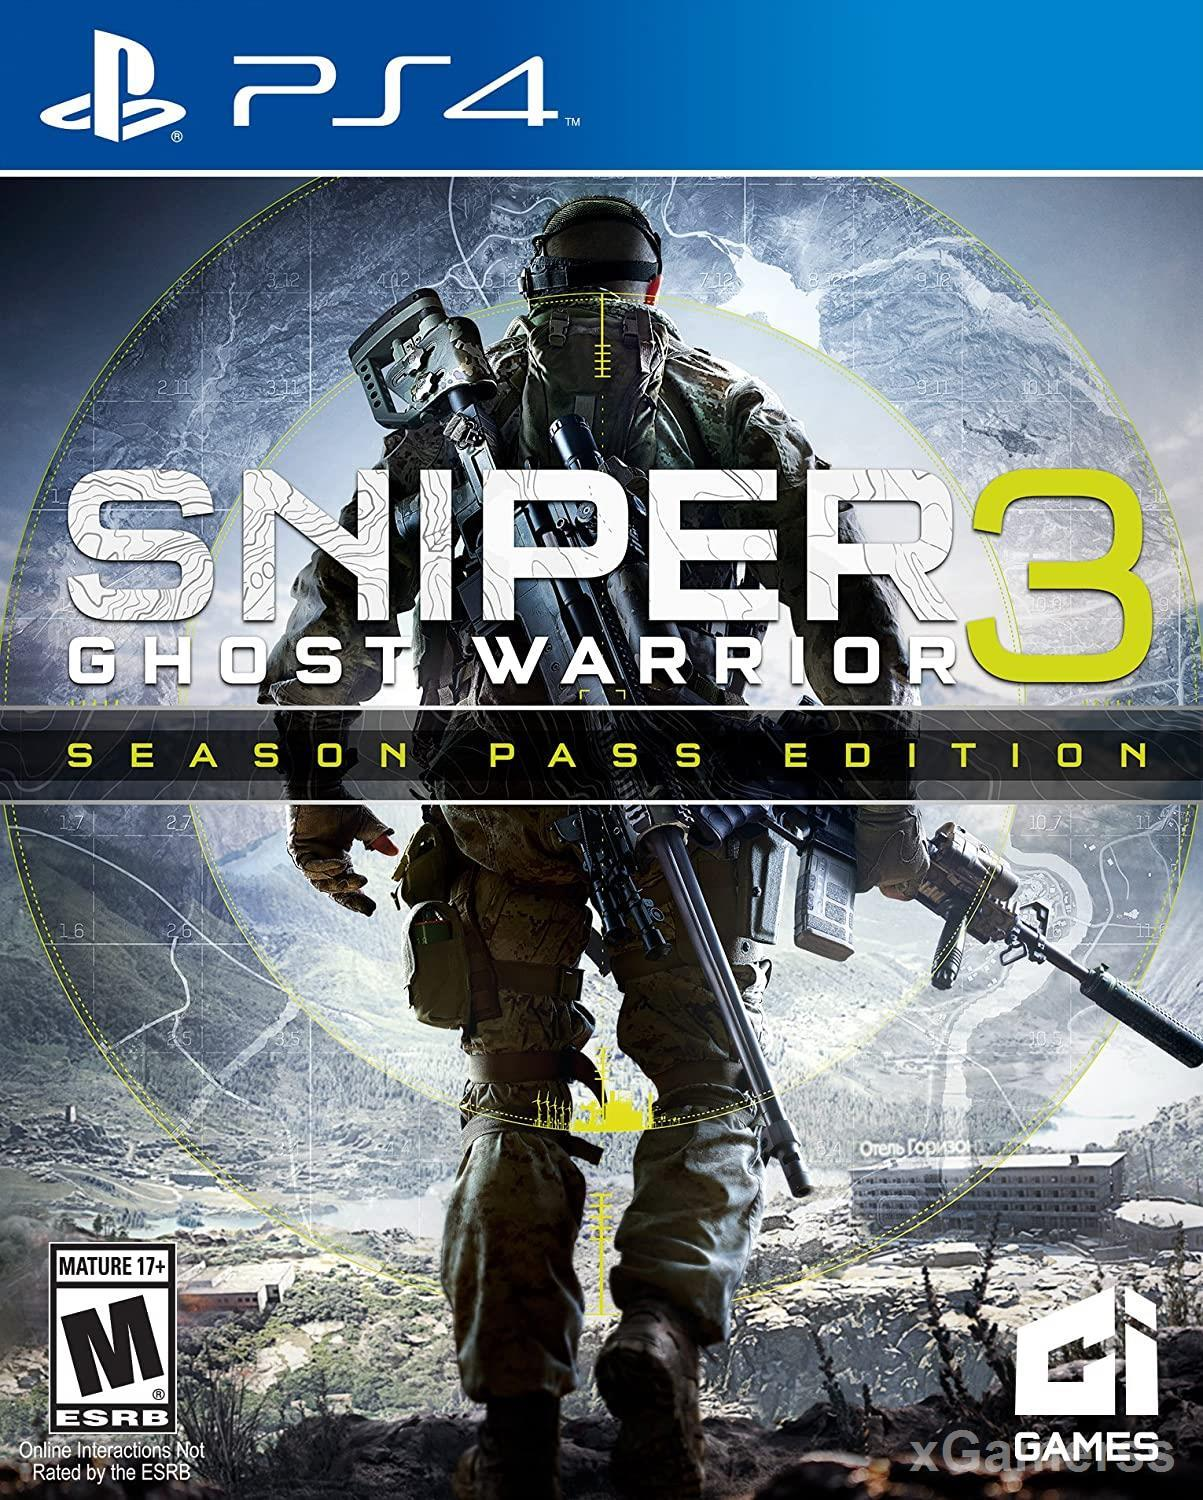 Sniper: Ghost Warrior 3 - Focused on a tactical game in the first person